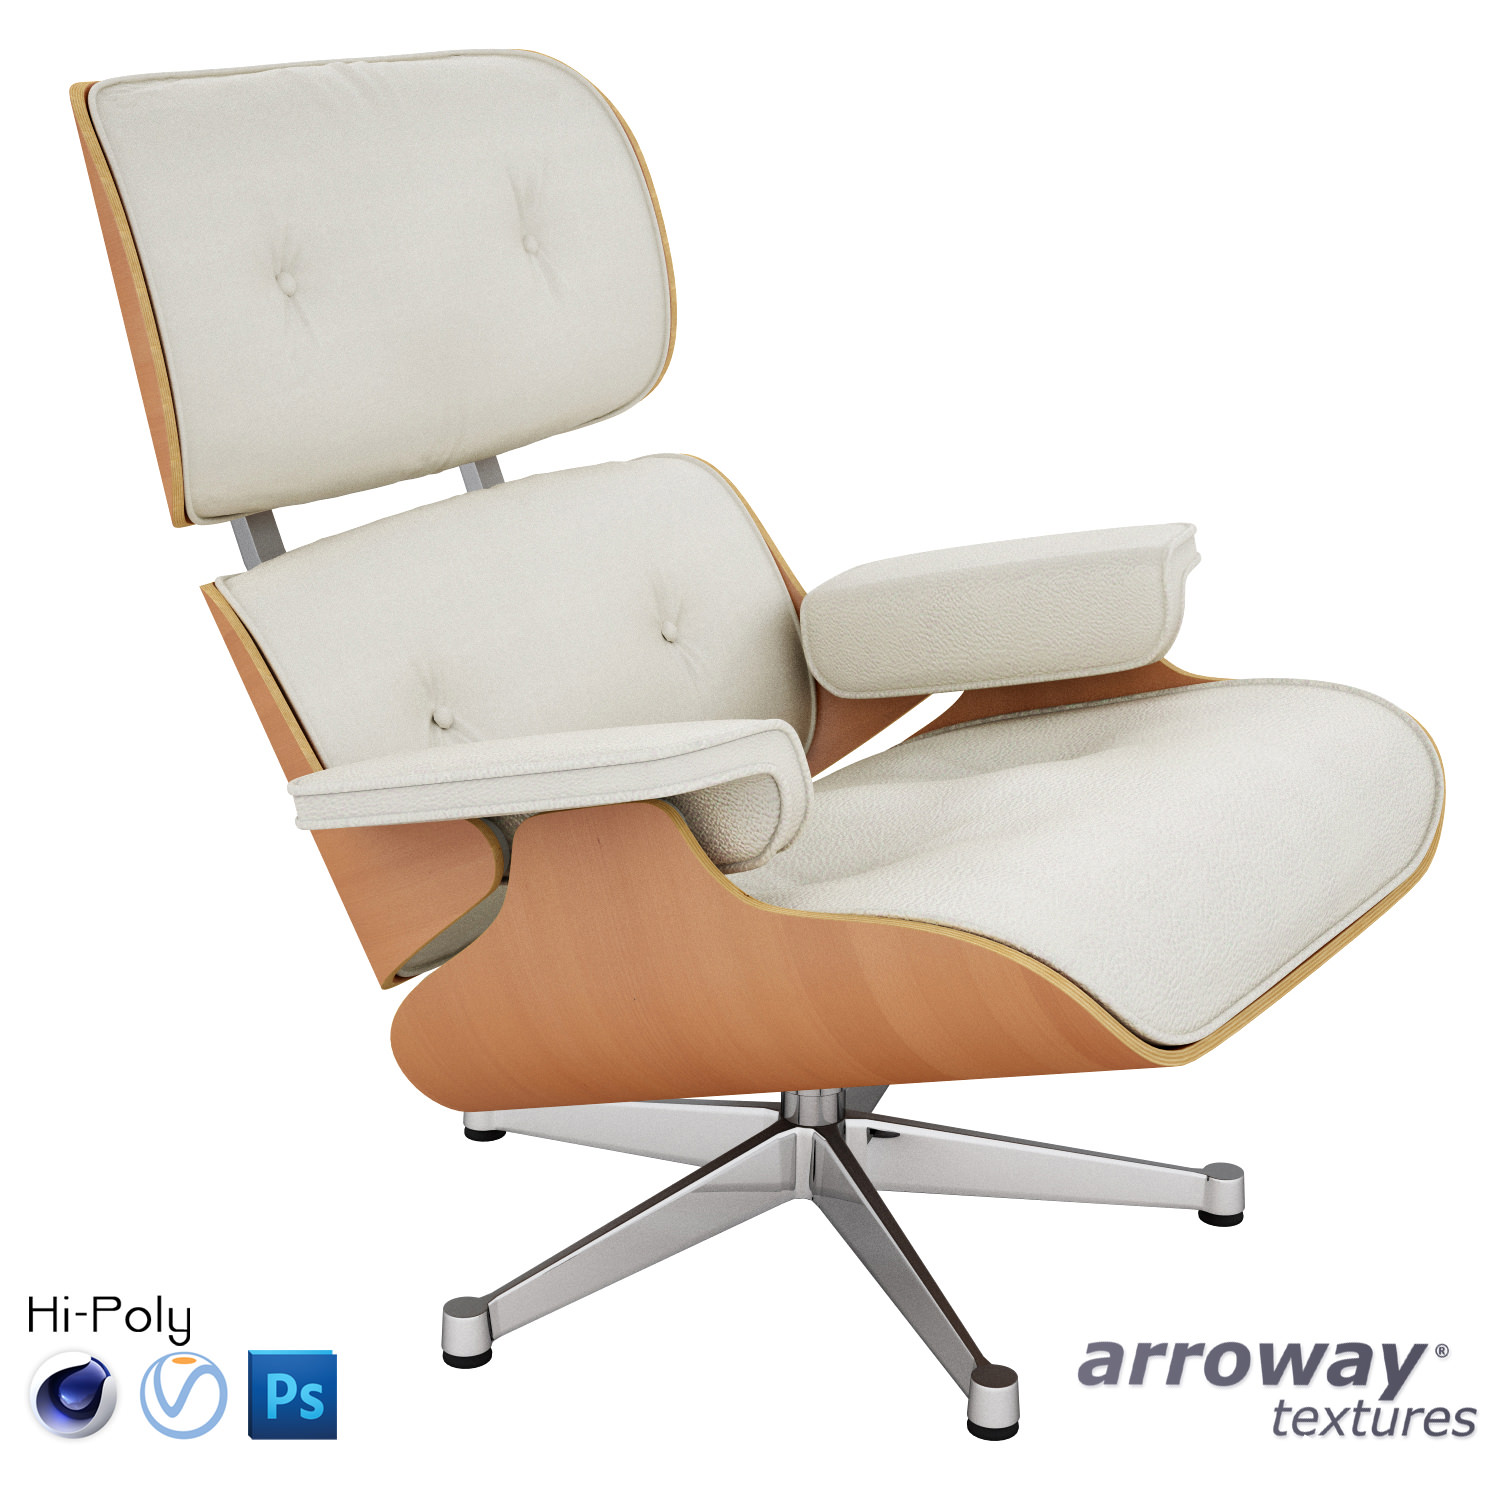 Vitra Eames Lounge Chair Vitra Lounge Eames Chair Hi Poly 3d Model